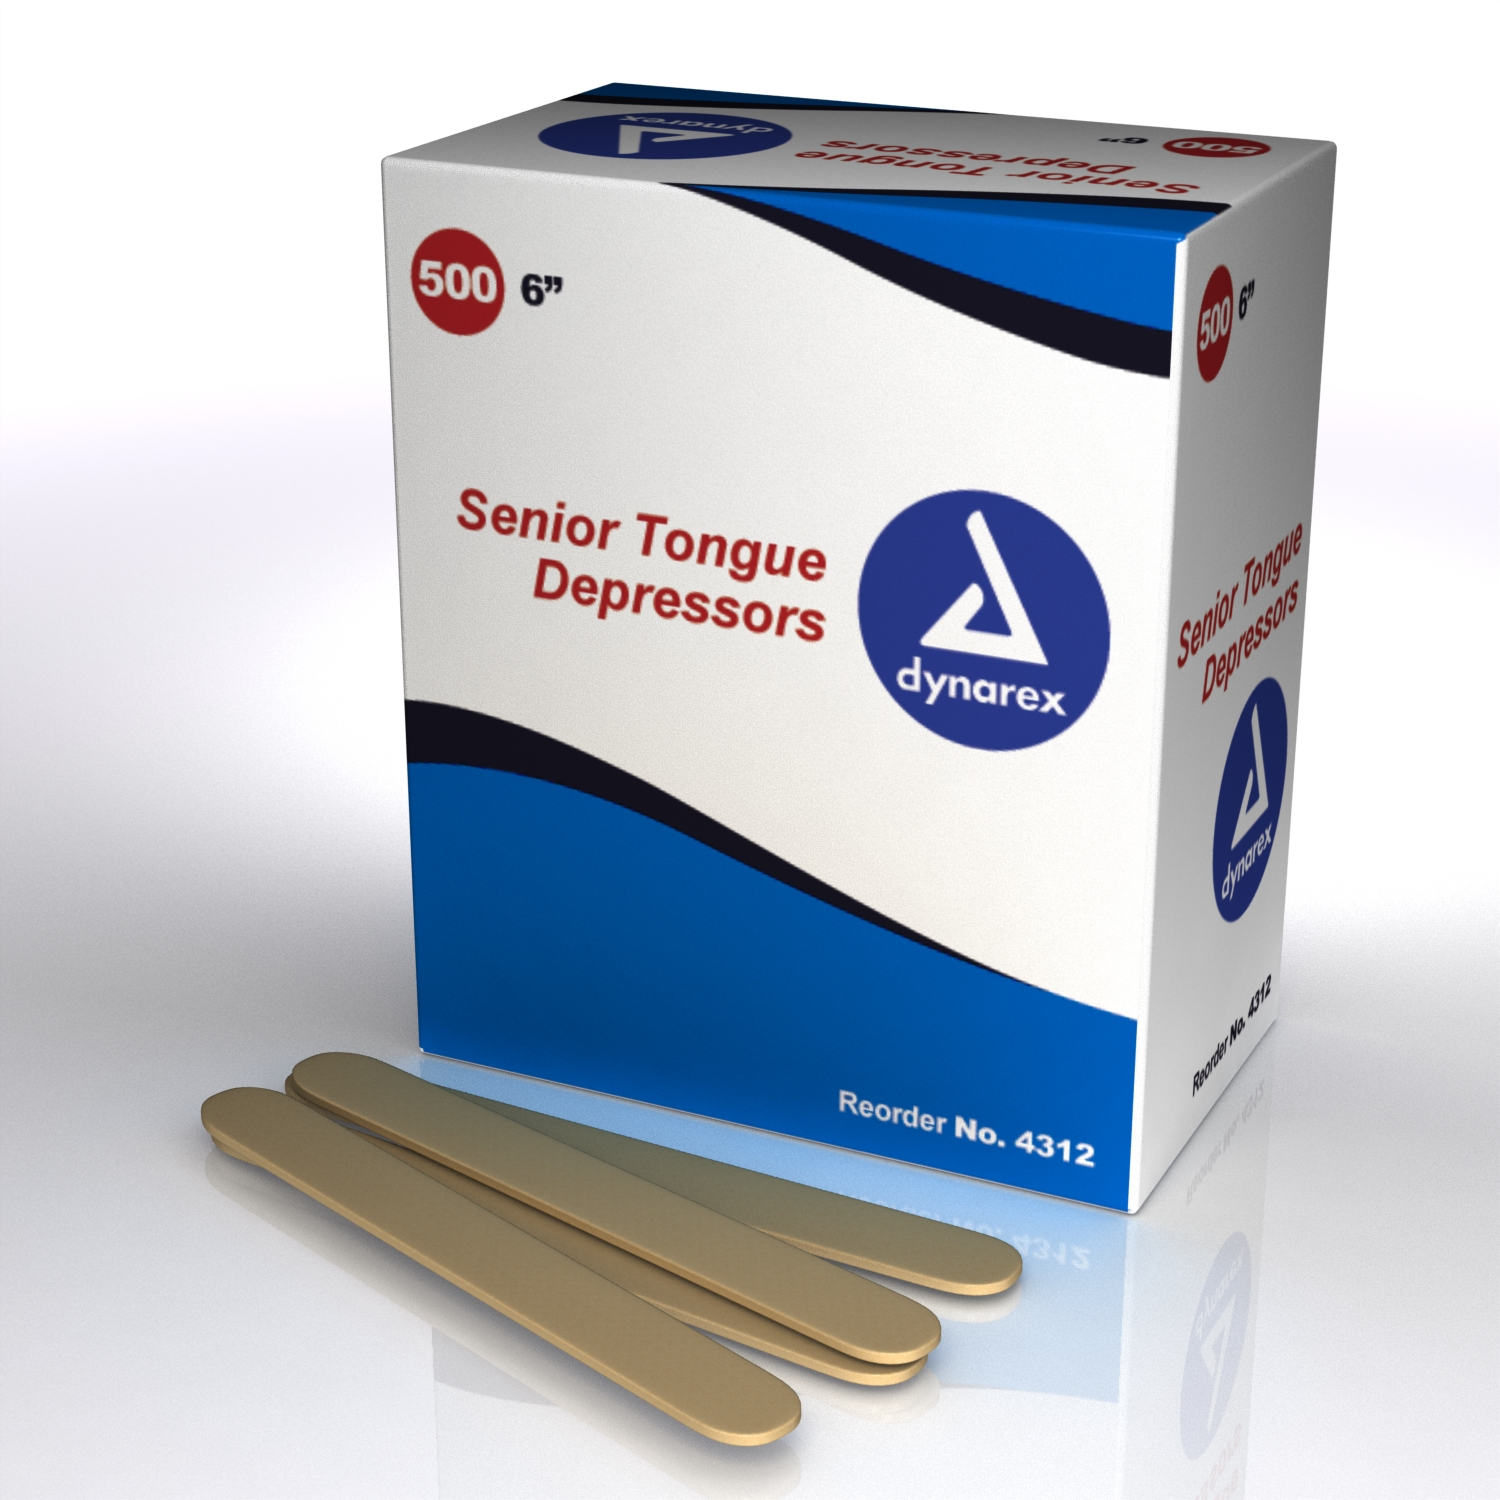 Tongue Depressors Wood, Non-sterile - Senior 6""